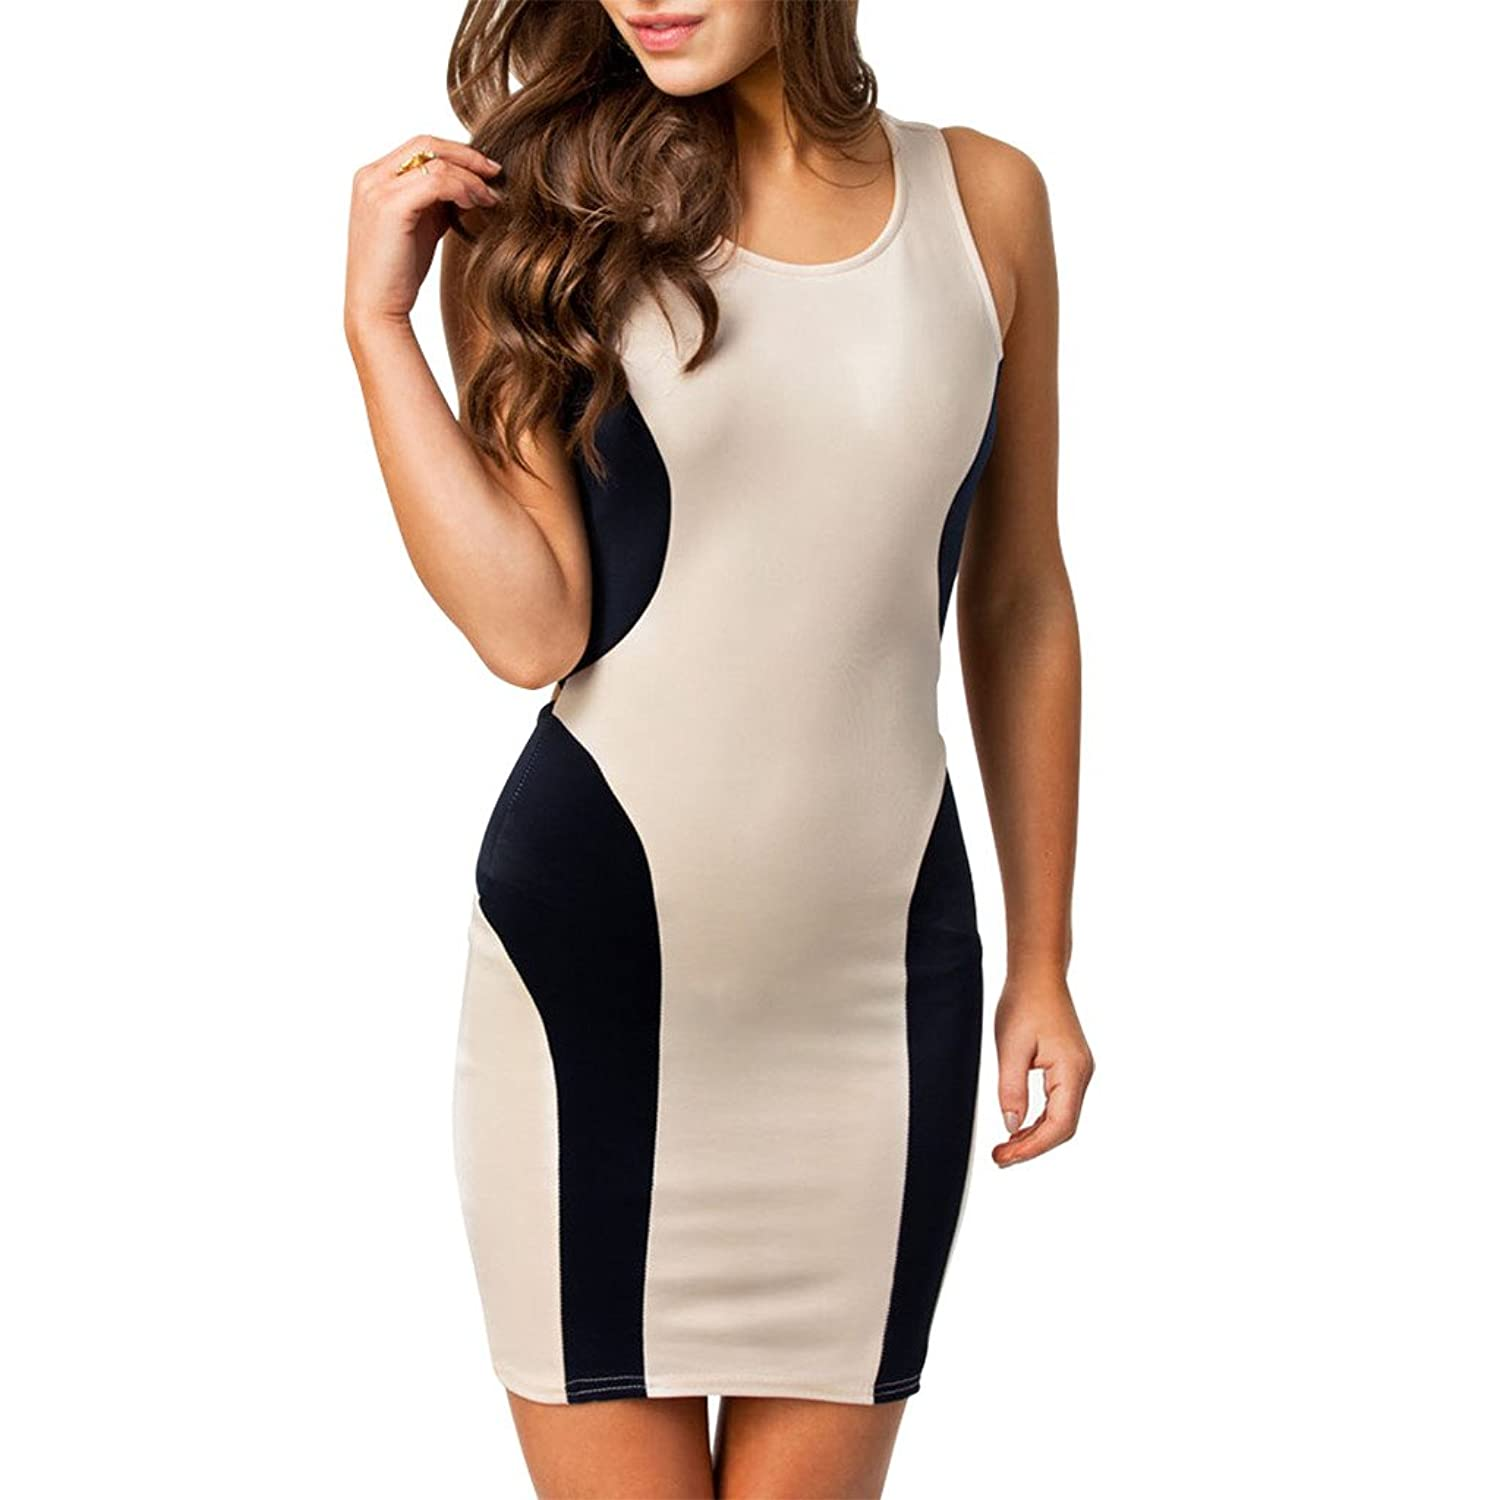 Women's sexy Tunic Patch Contrast Color cross back Sleeveless Bodycon Pencil Dress